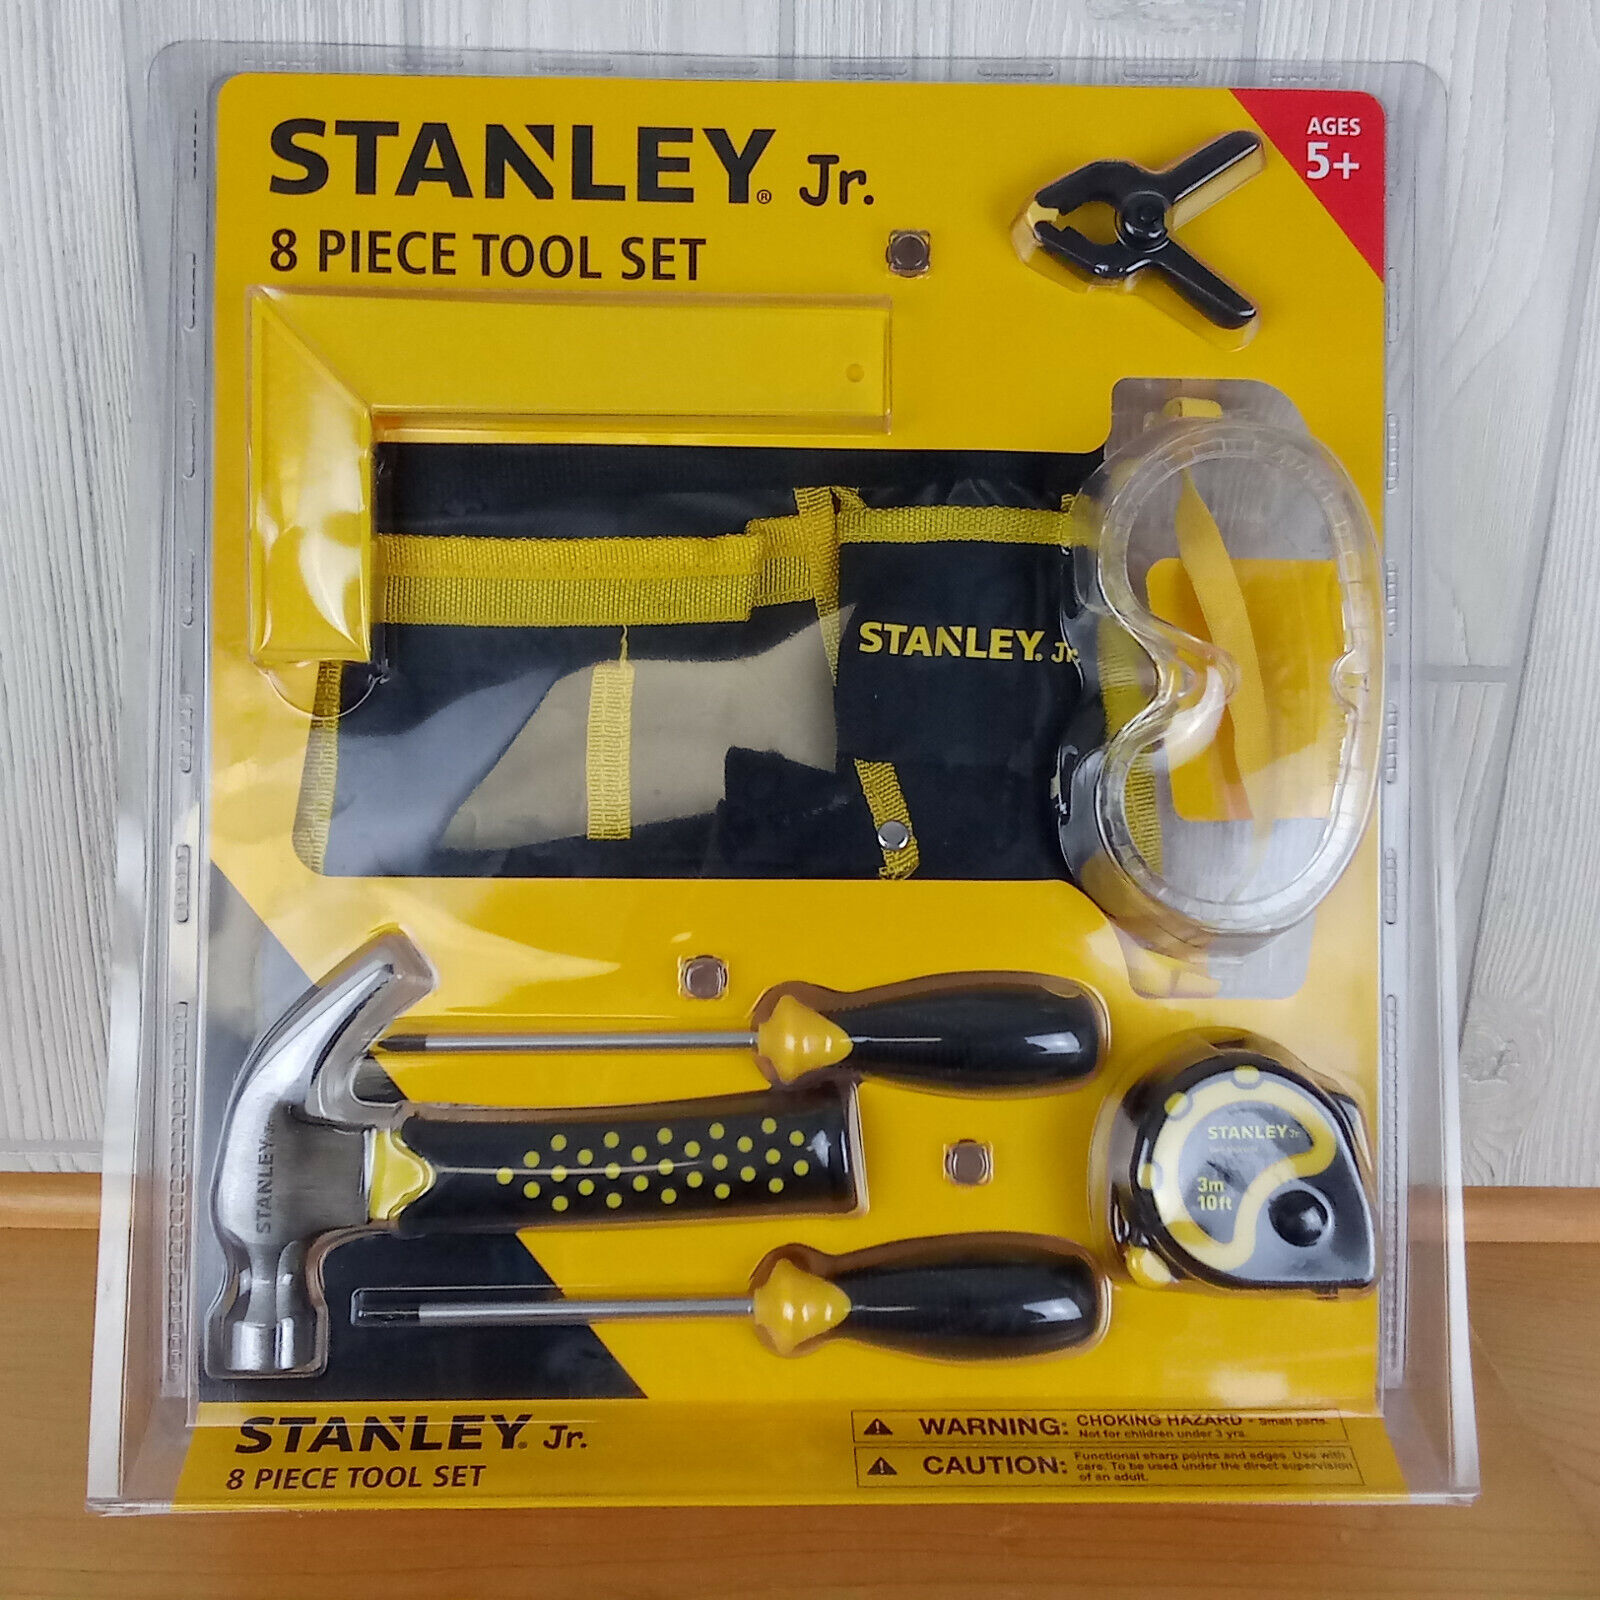 New! Stanley Jr. 8 Piece Real Tool Set for Kids 5+ Hammer Sc